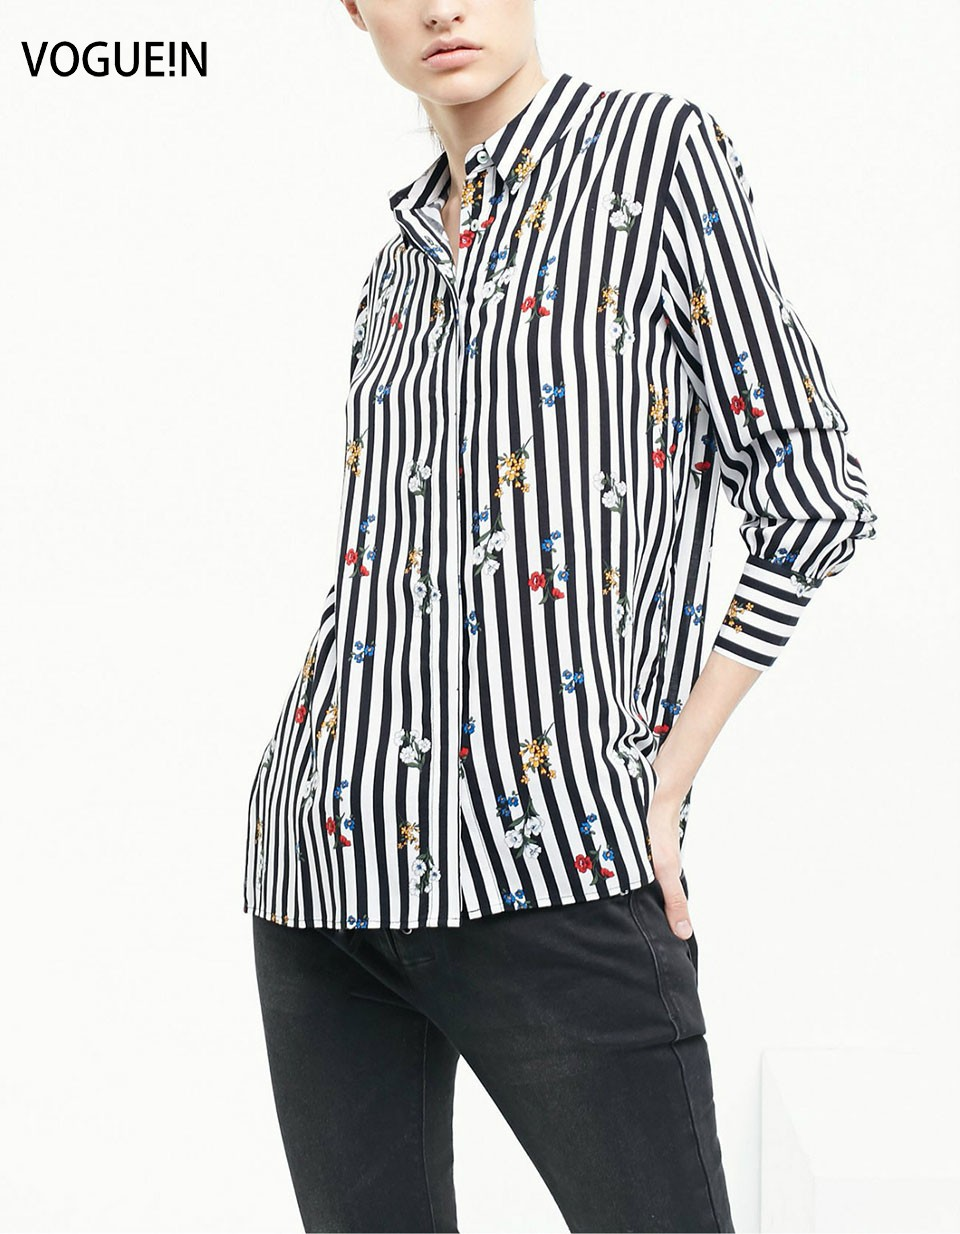 Vogue n new womens spring floral black white striped for Womens patterned button down shirts